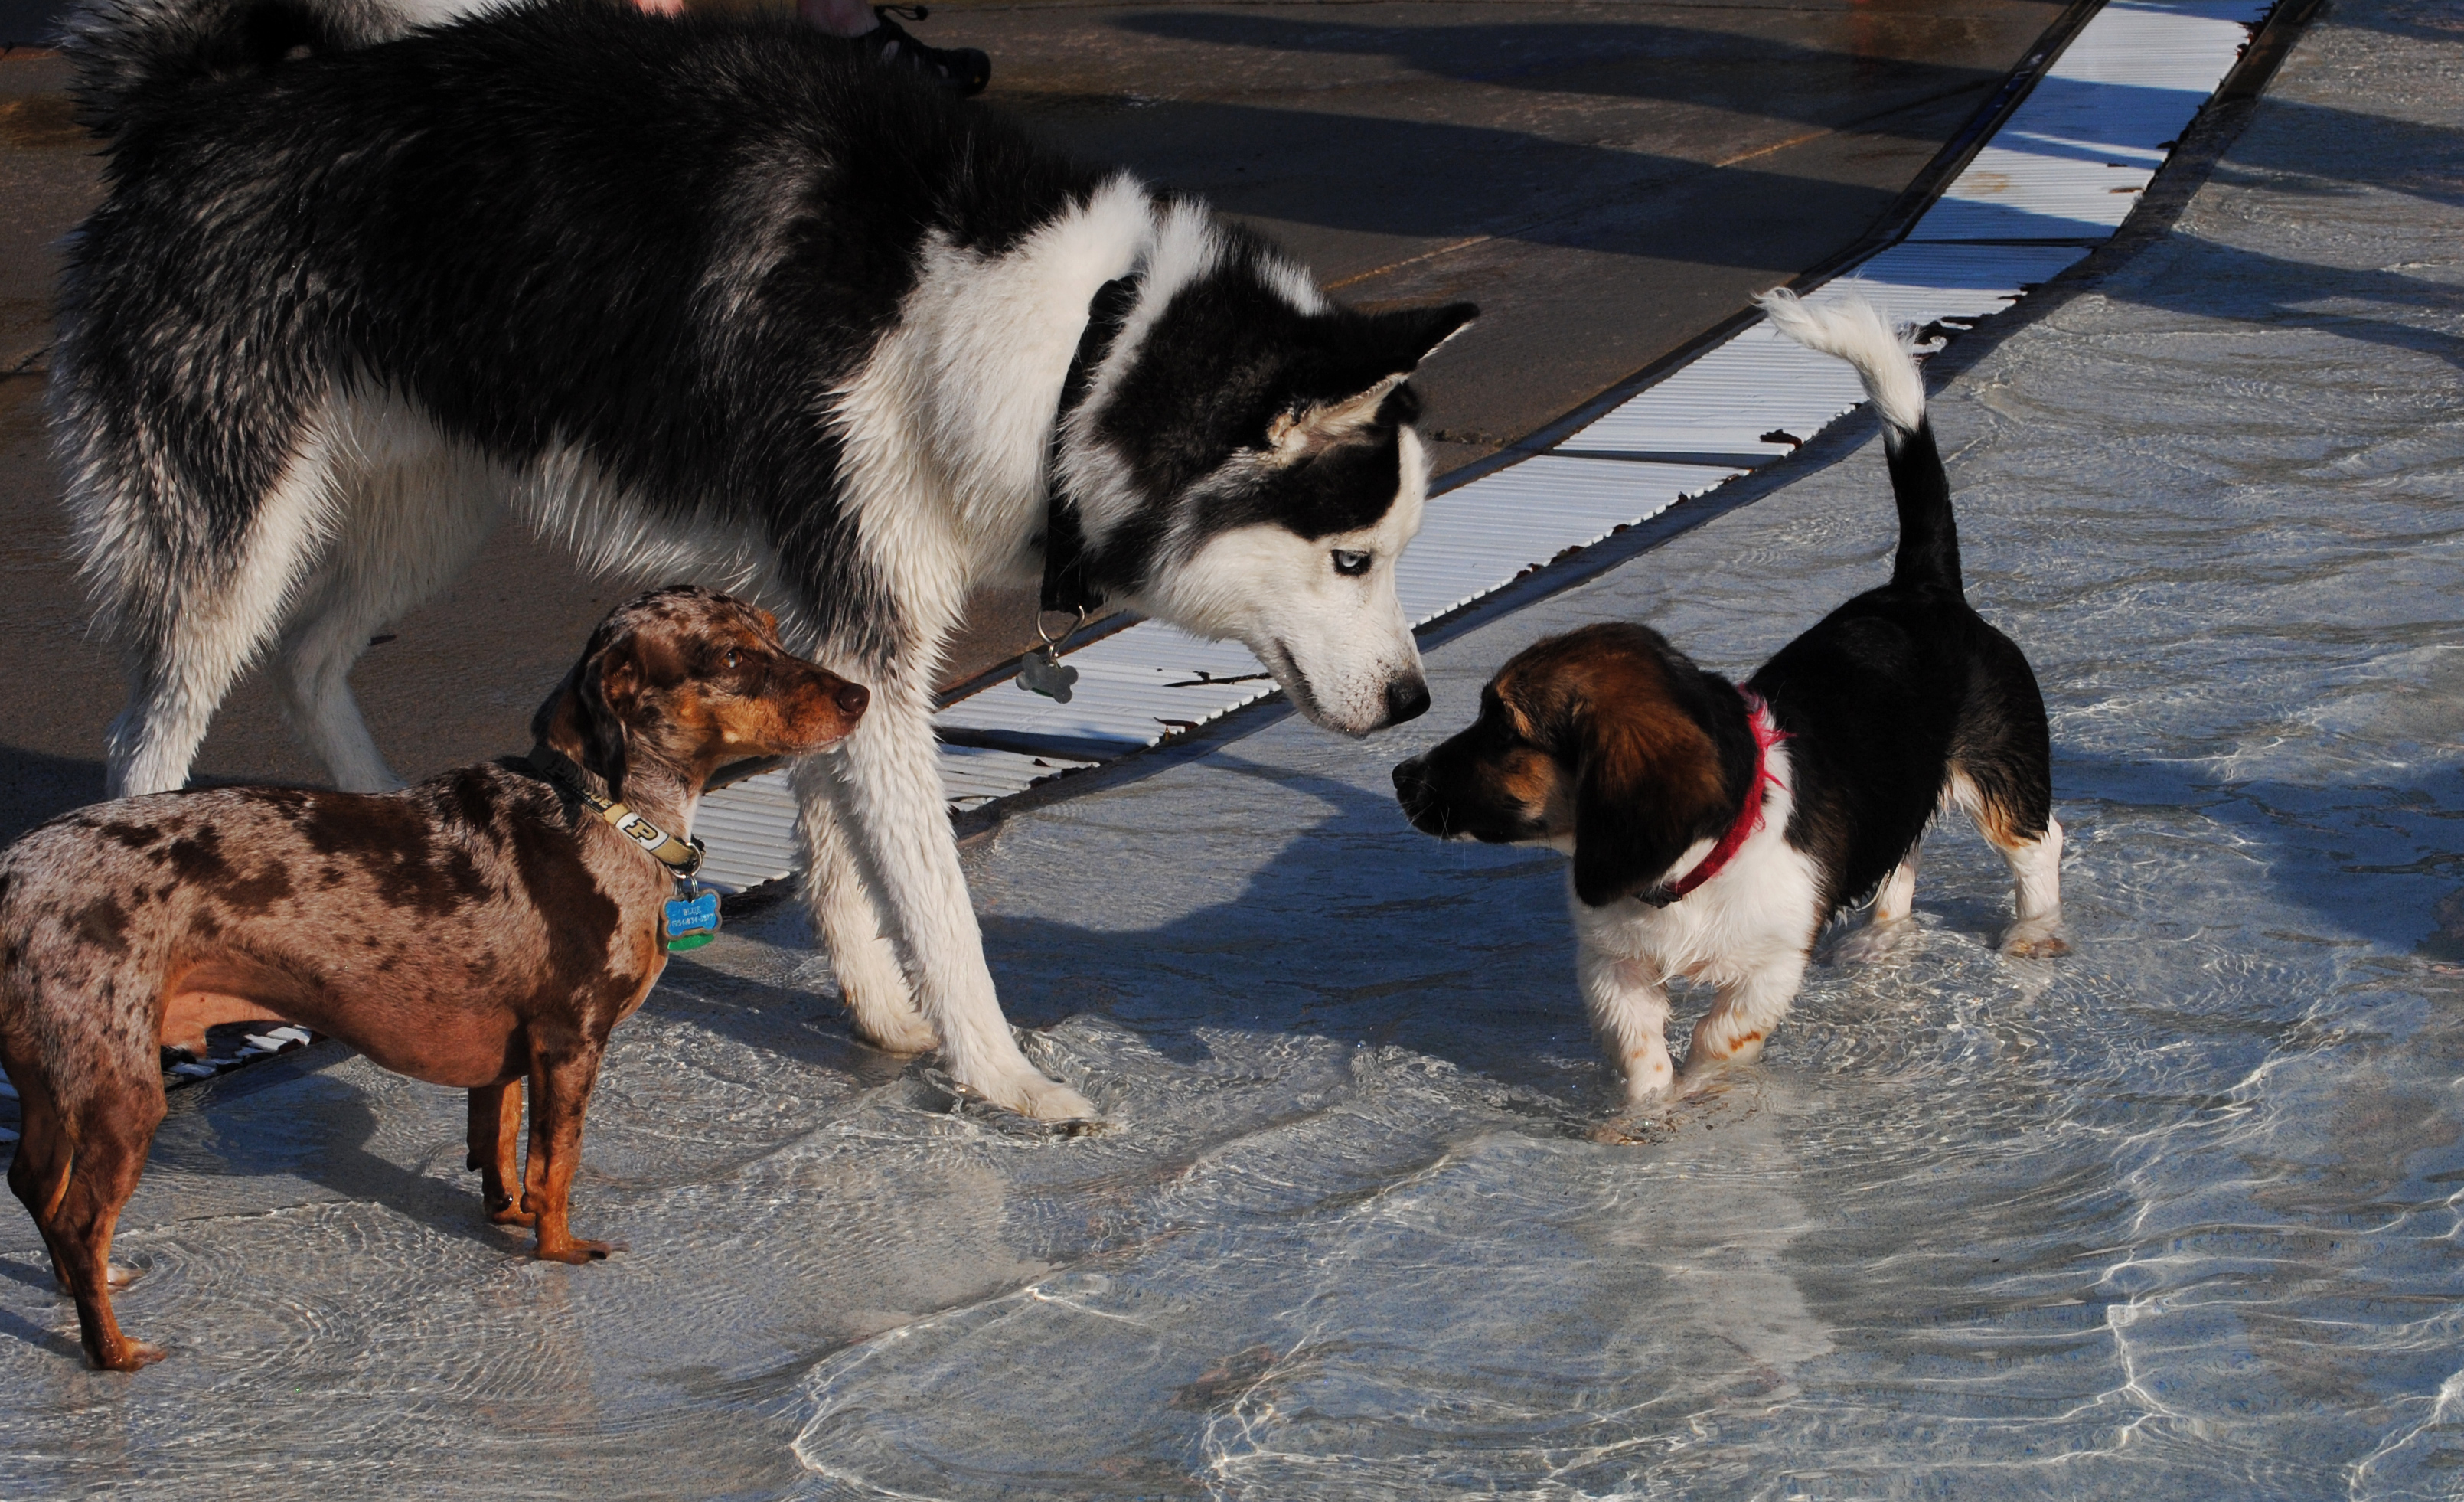 a large dog stands with two small dogs in a pool of water